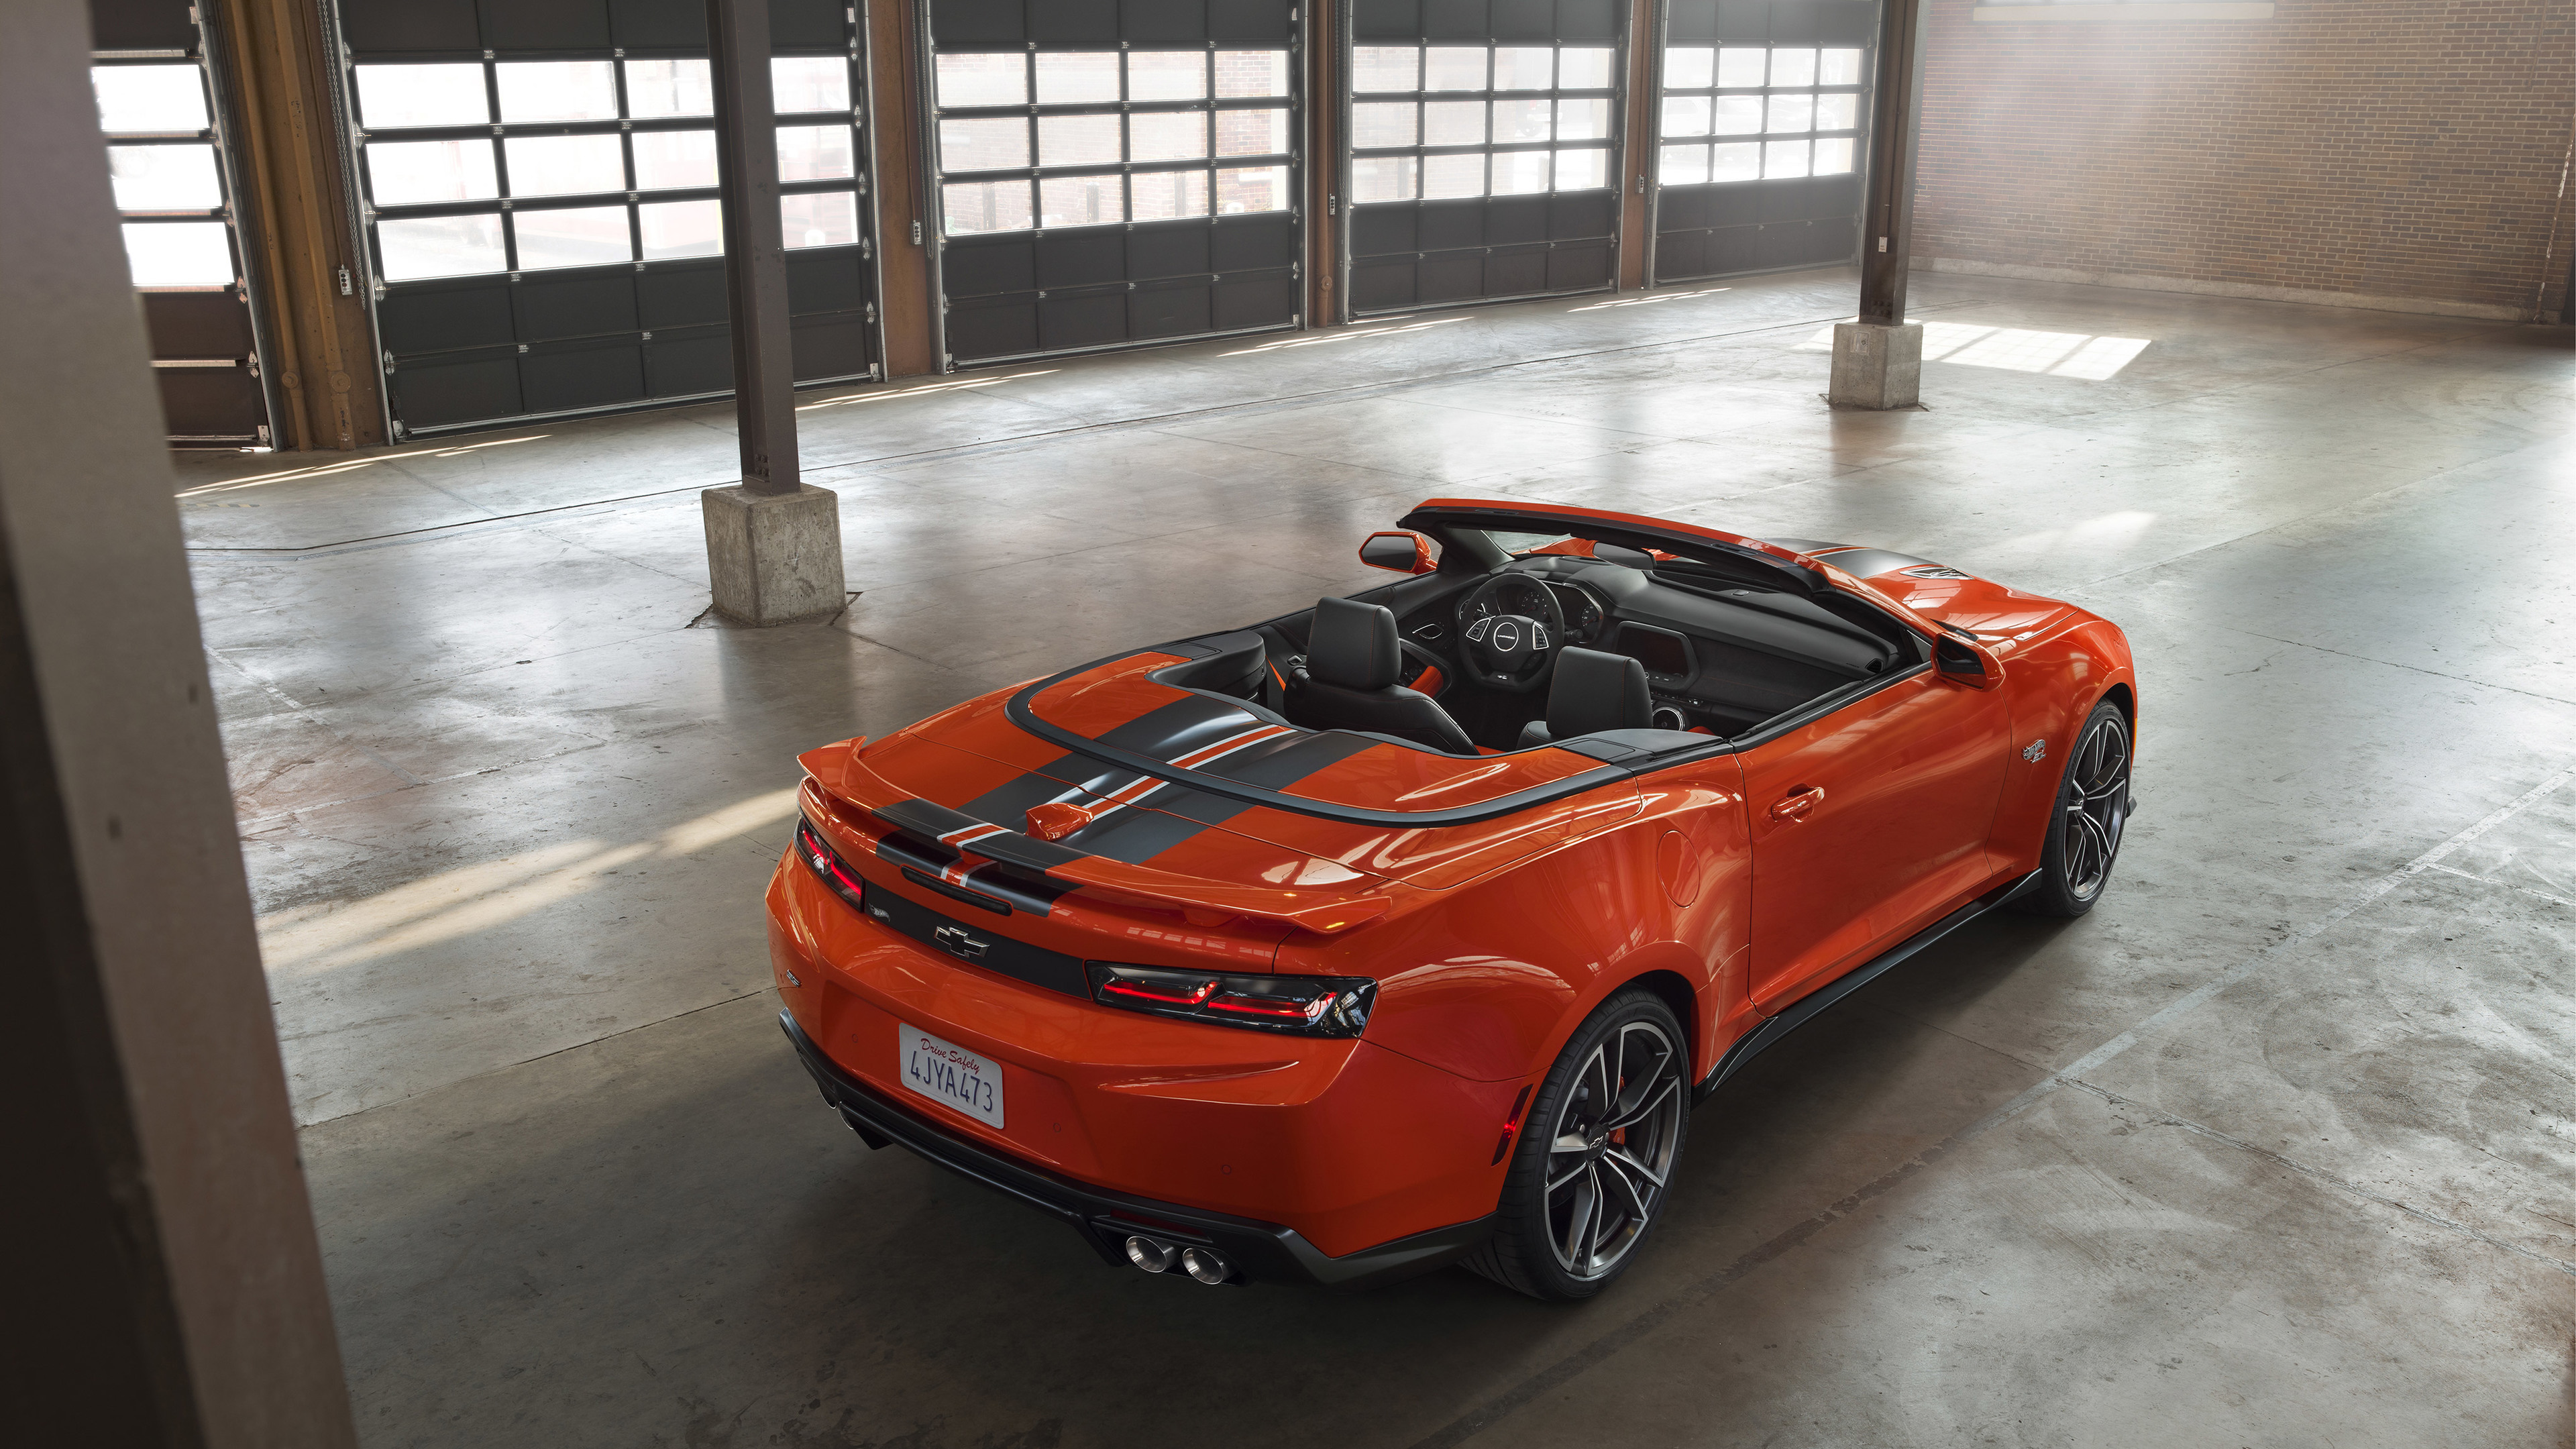 2018 chevrolet camaro ss convertible rear hot wheels 50th anniversary edition 1539107864 - 2018 Chevrolet Camaro SS Convertible Rear Hot Wheels 50th Anniversary Edition - hd-wallpapers, chevrolet wallpapers, chevrolet camaro wallpapers, cars wallpapers, 4k-wallpapers, 2018 cars wallpapers